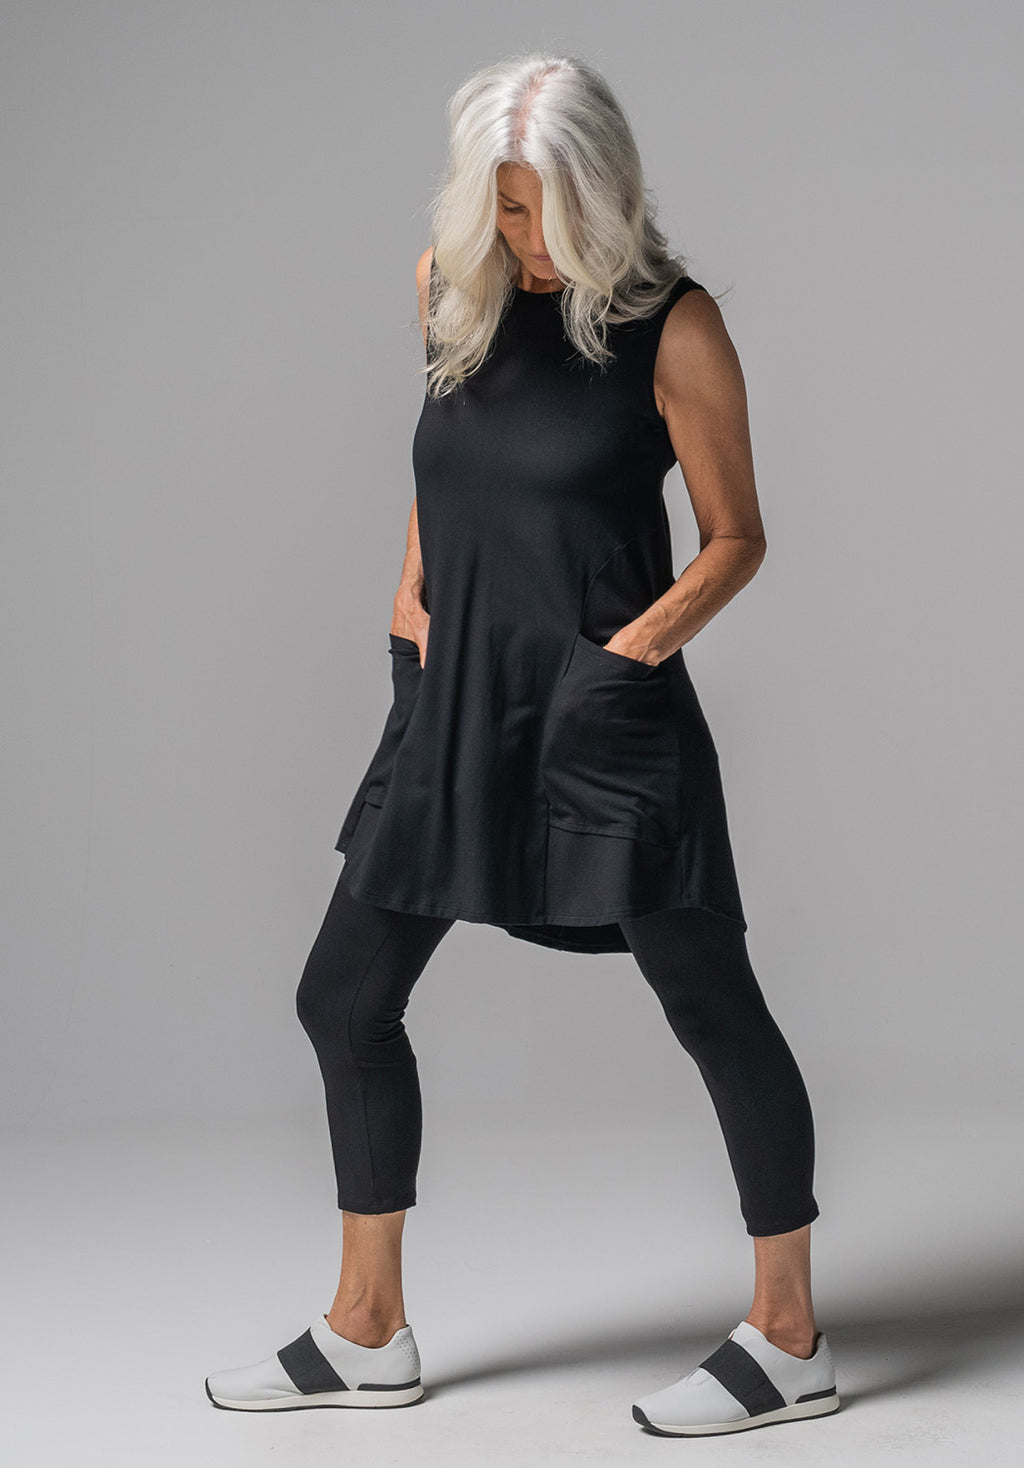 womens clothing online, bamboo leggings au, bamboo leggings online, australian leggings online, womens leggings australia